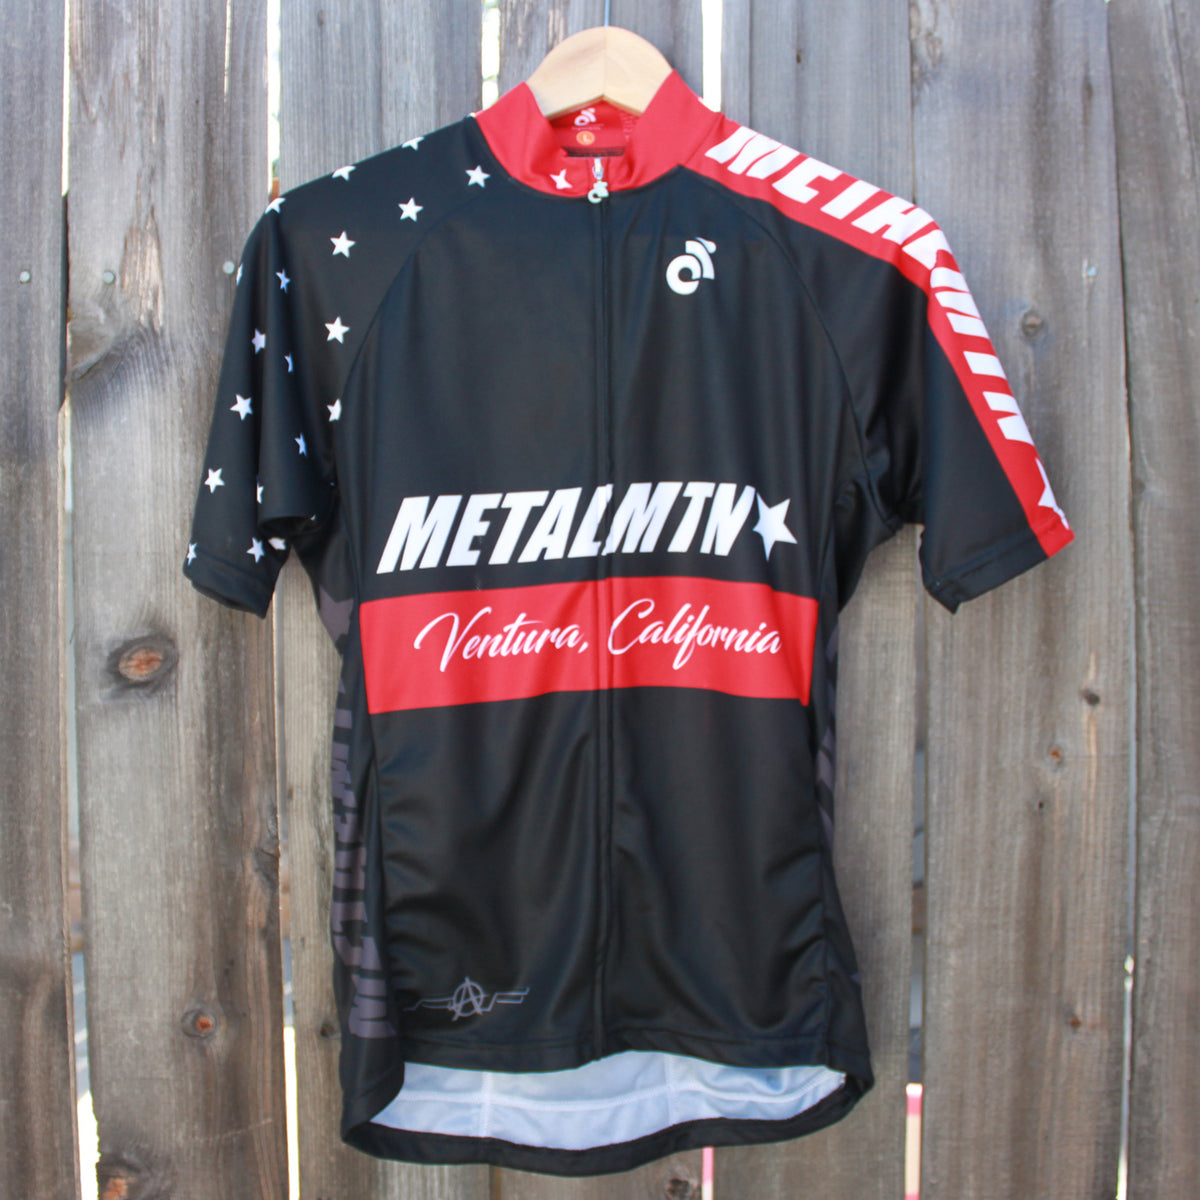 E17 Men's Cycling Jersey in Red